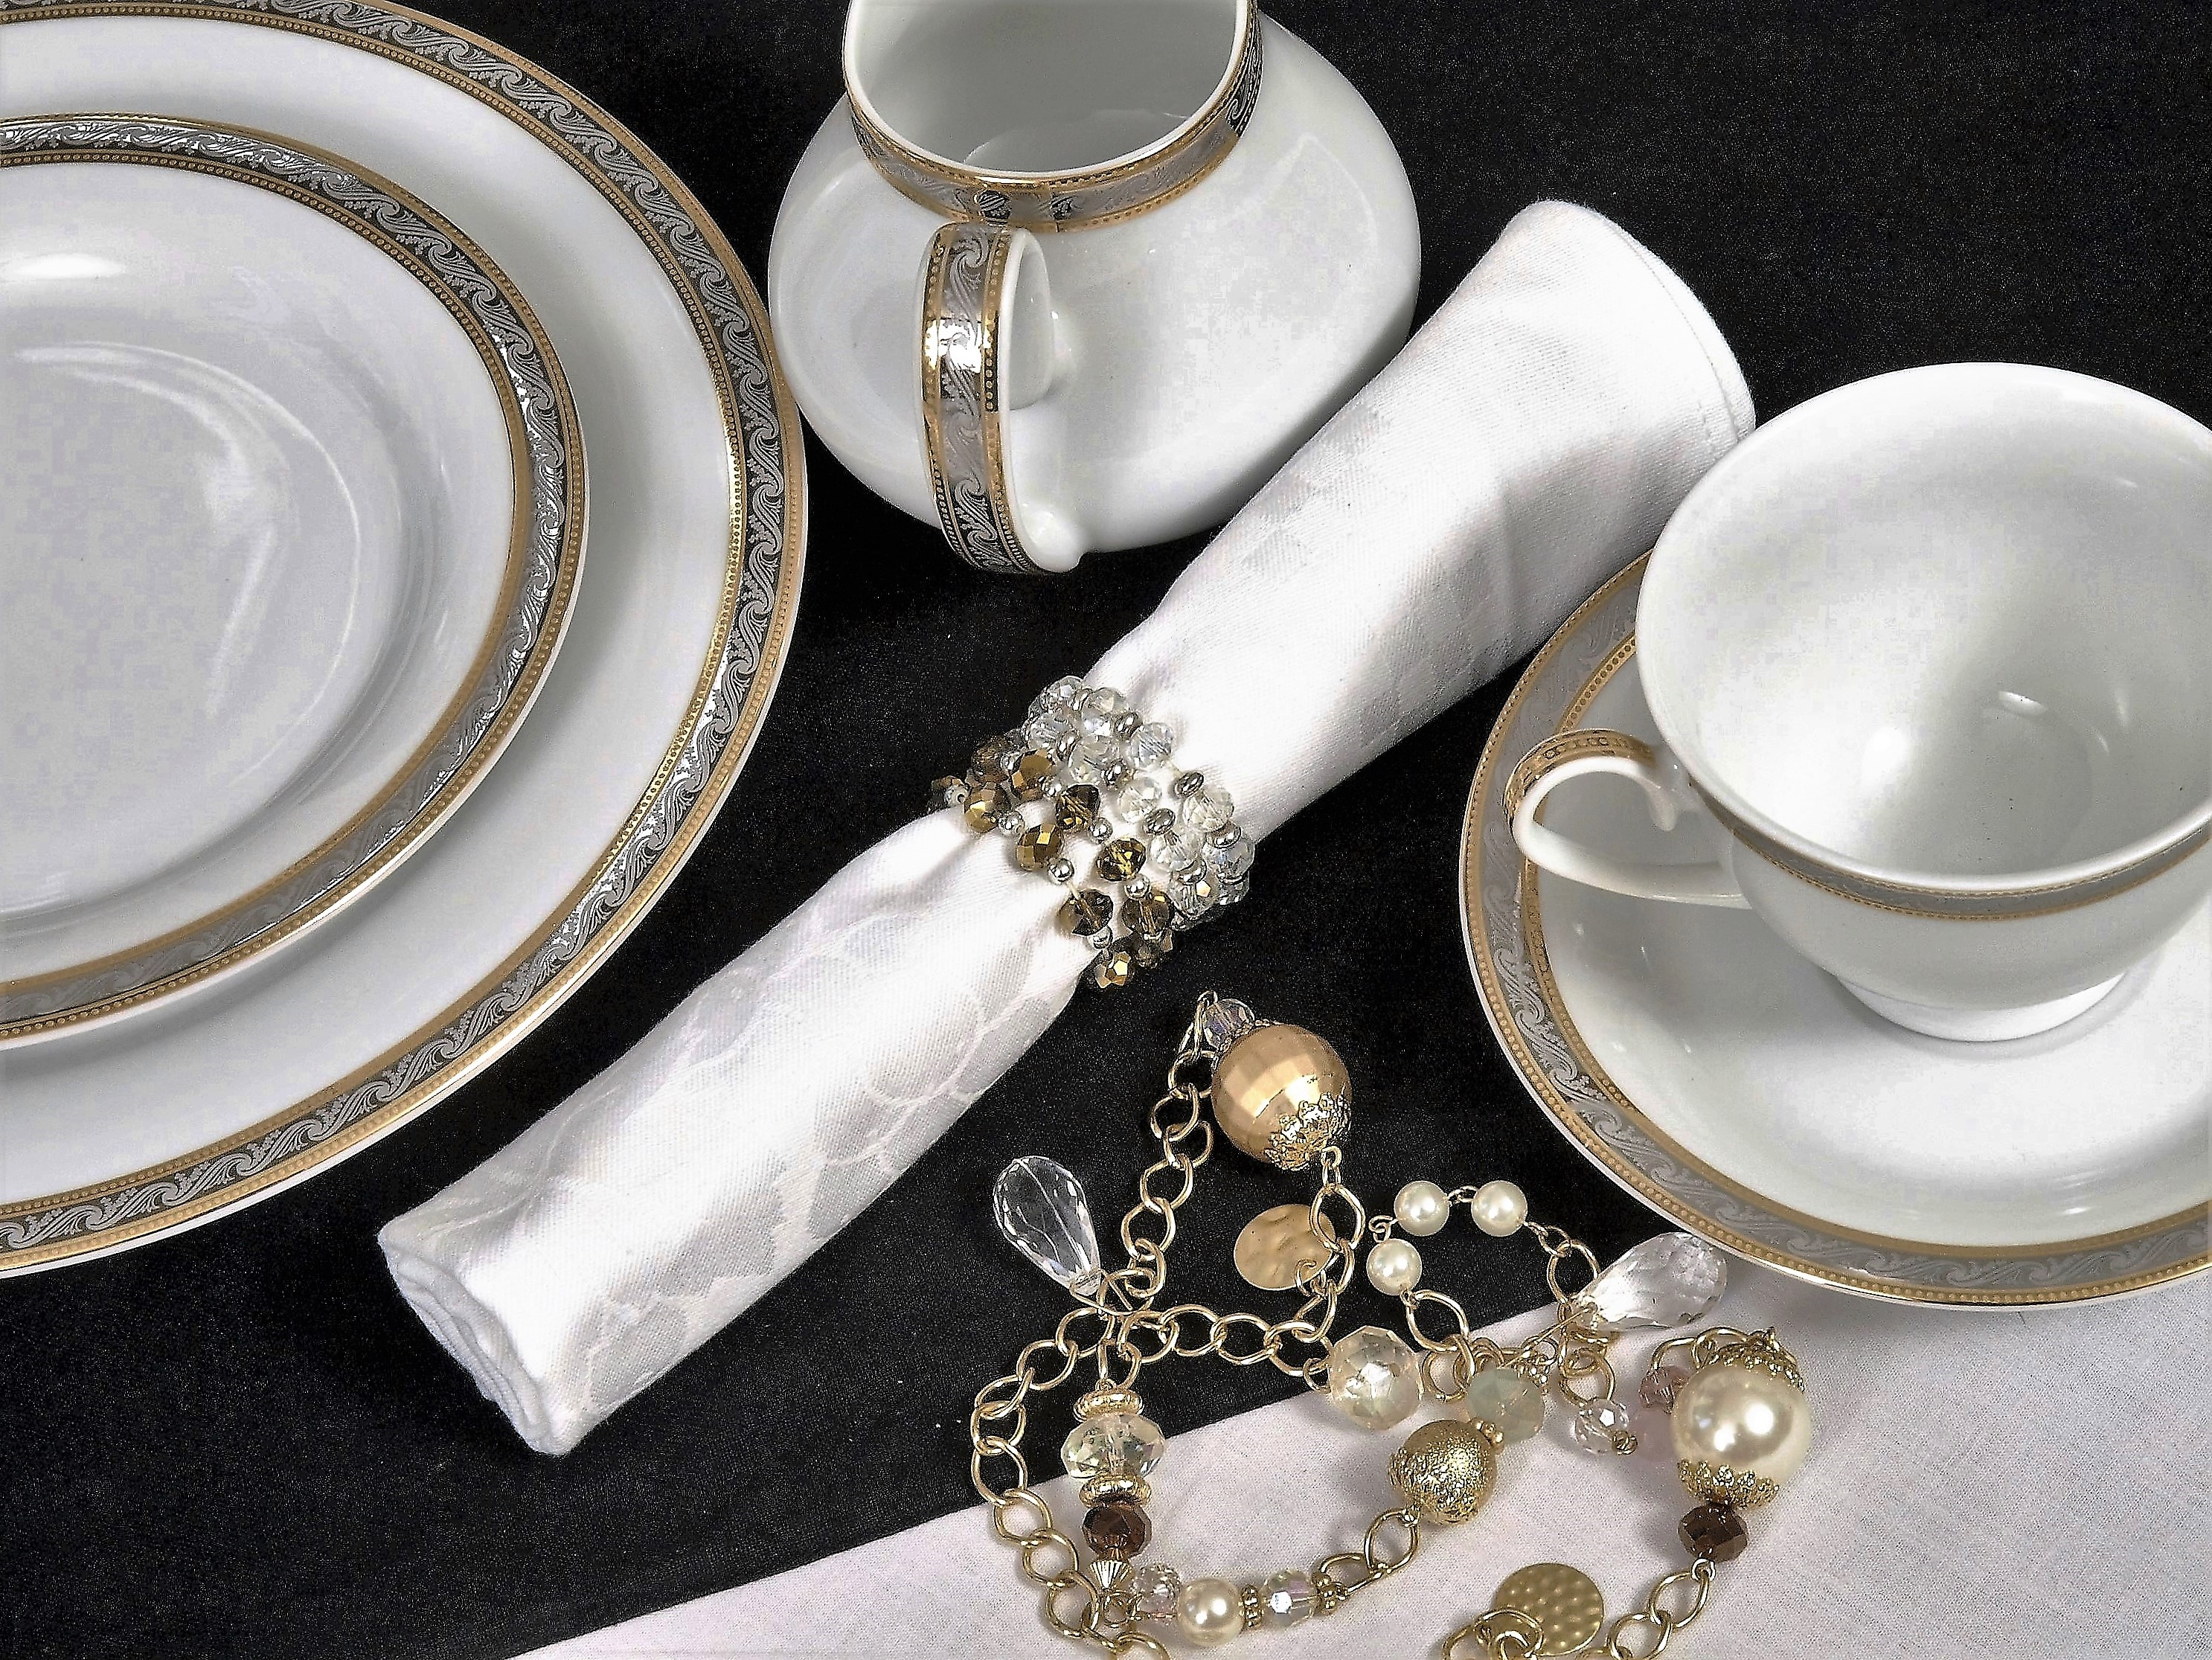 THE MYSOLICE 56 PIECE DINNER SERVICE